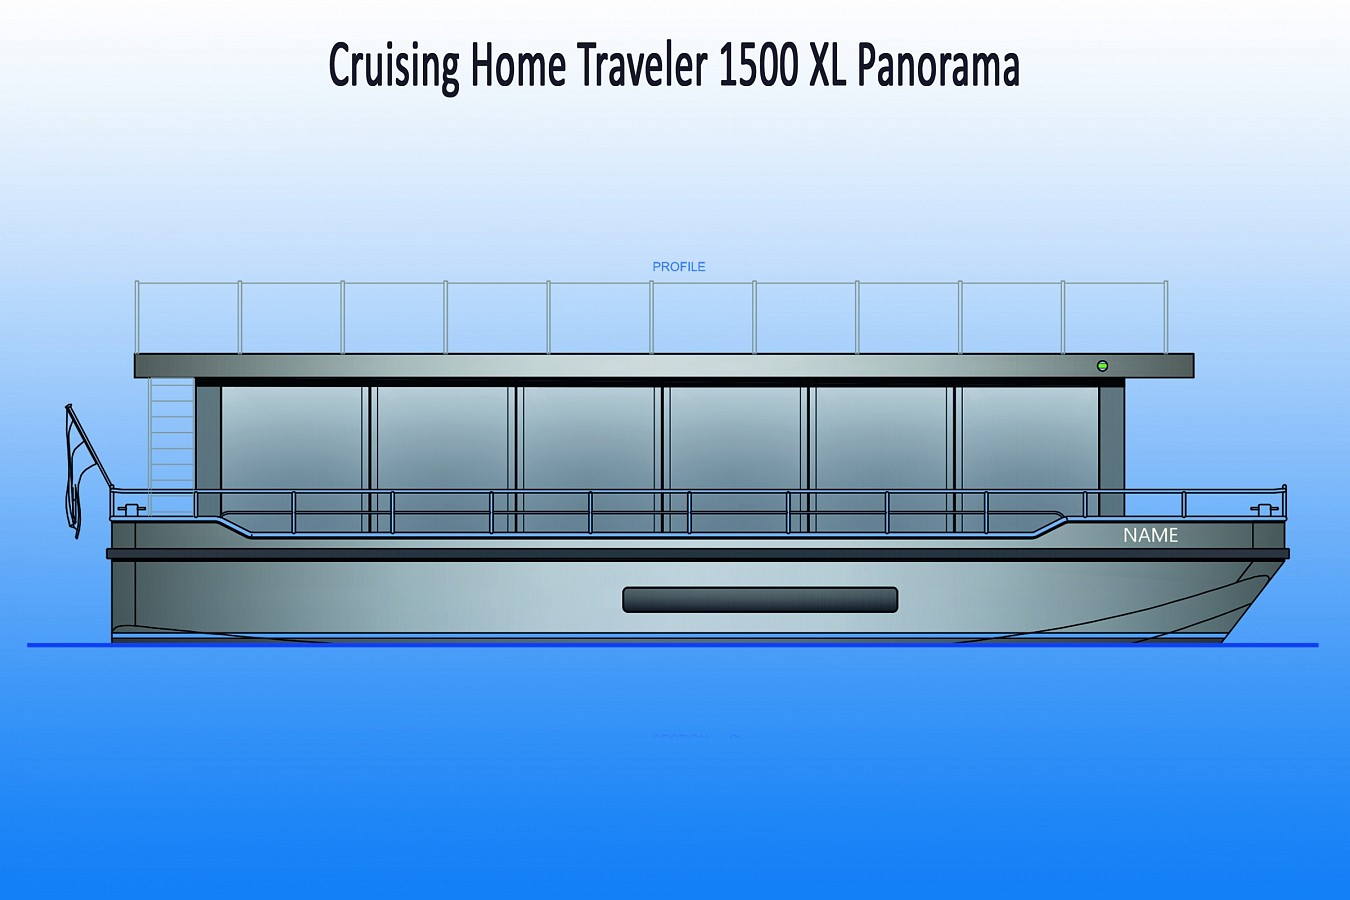 Cruising Home Traveler 1500 XL Panorama